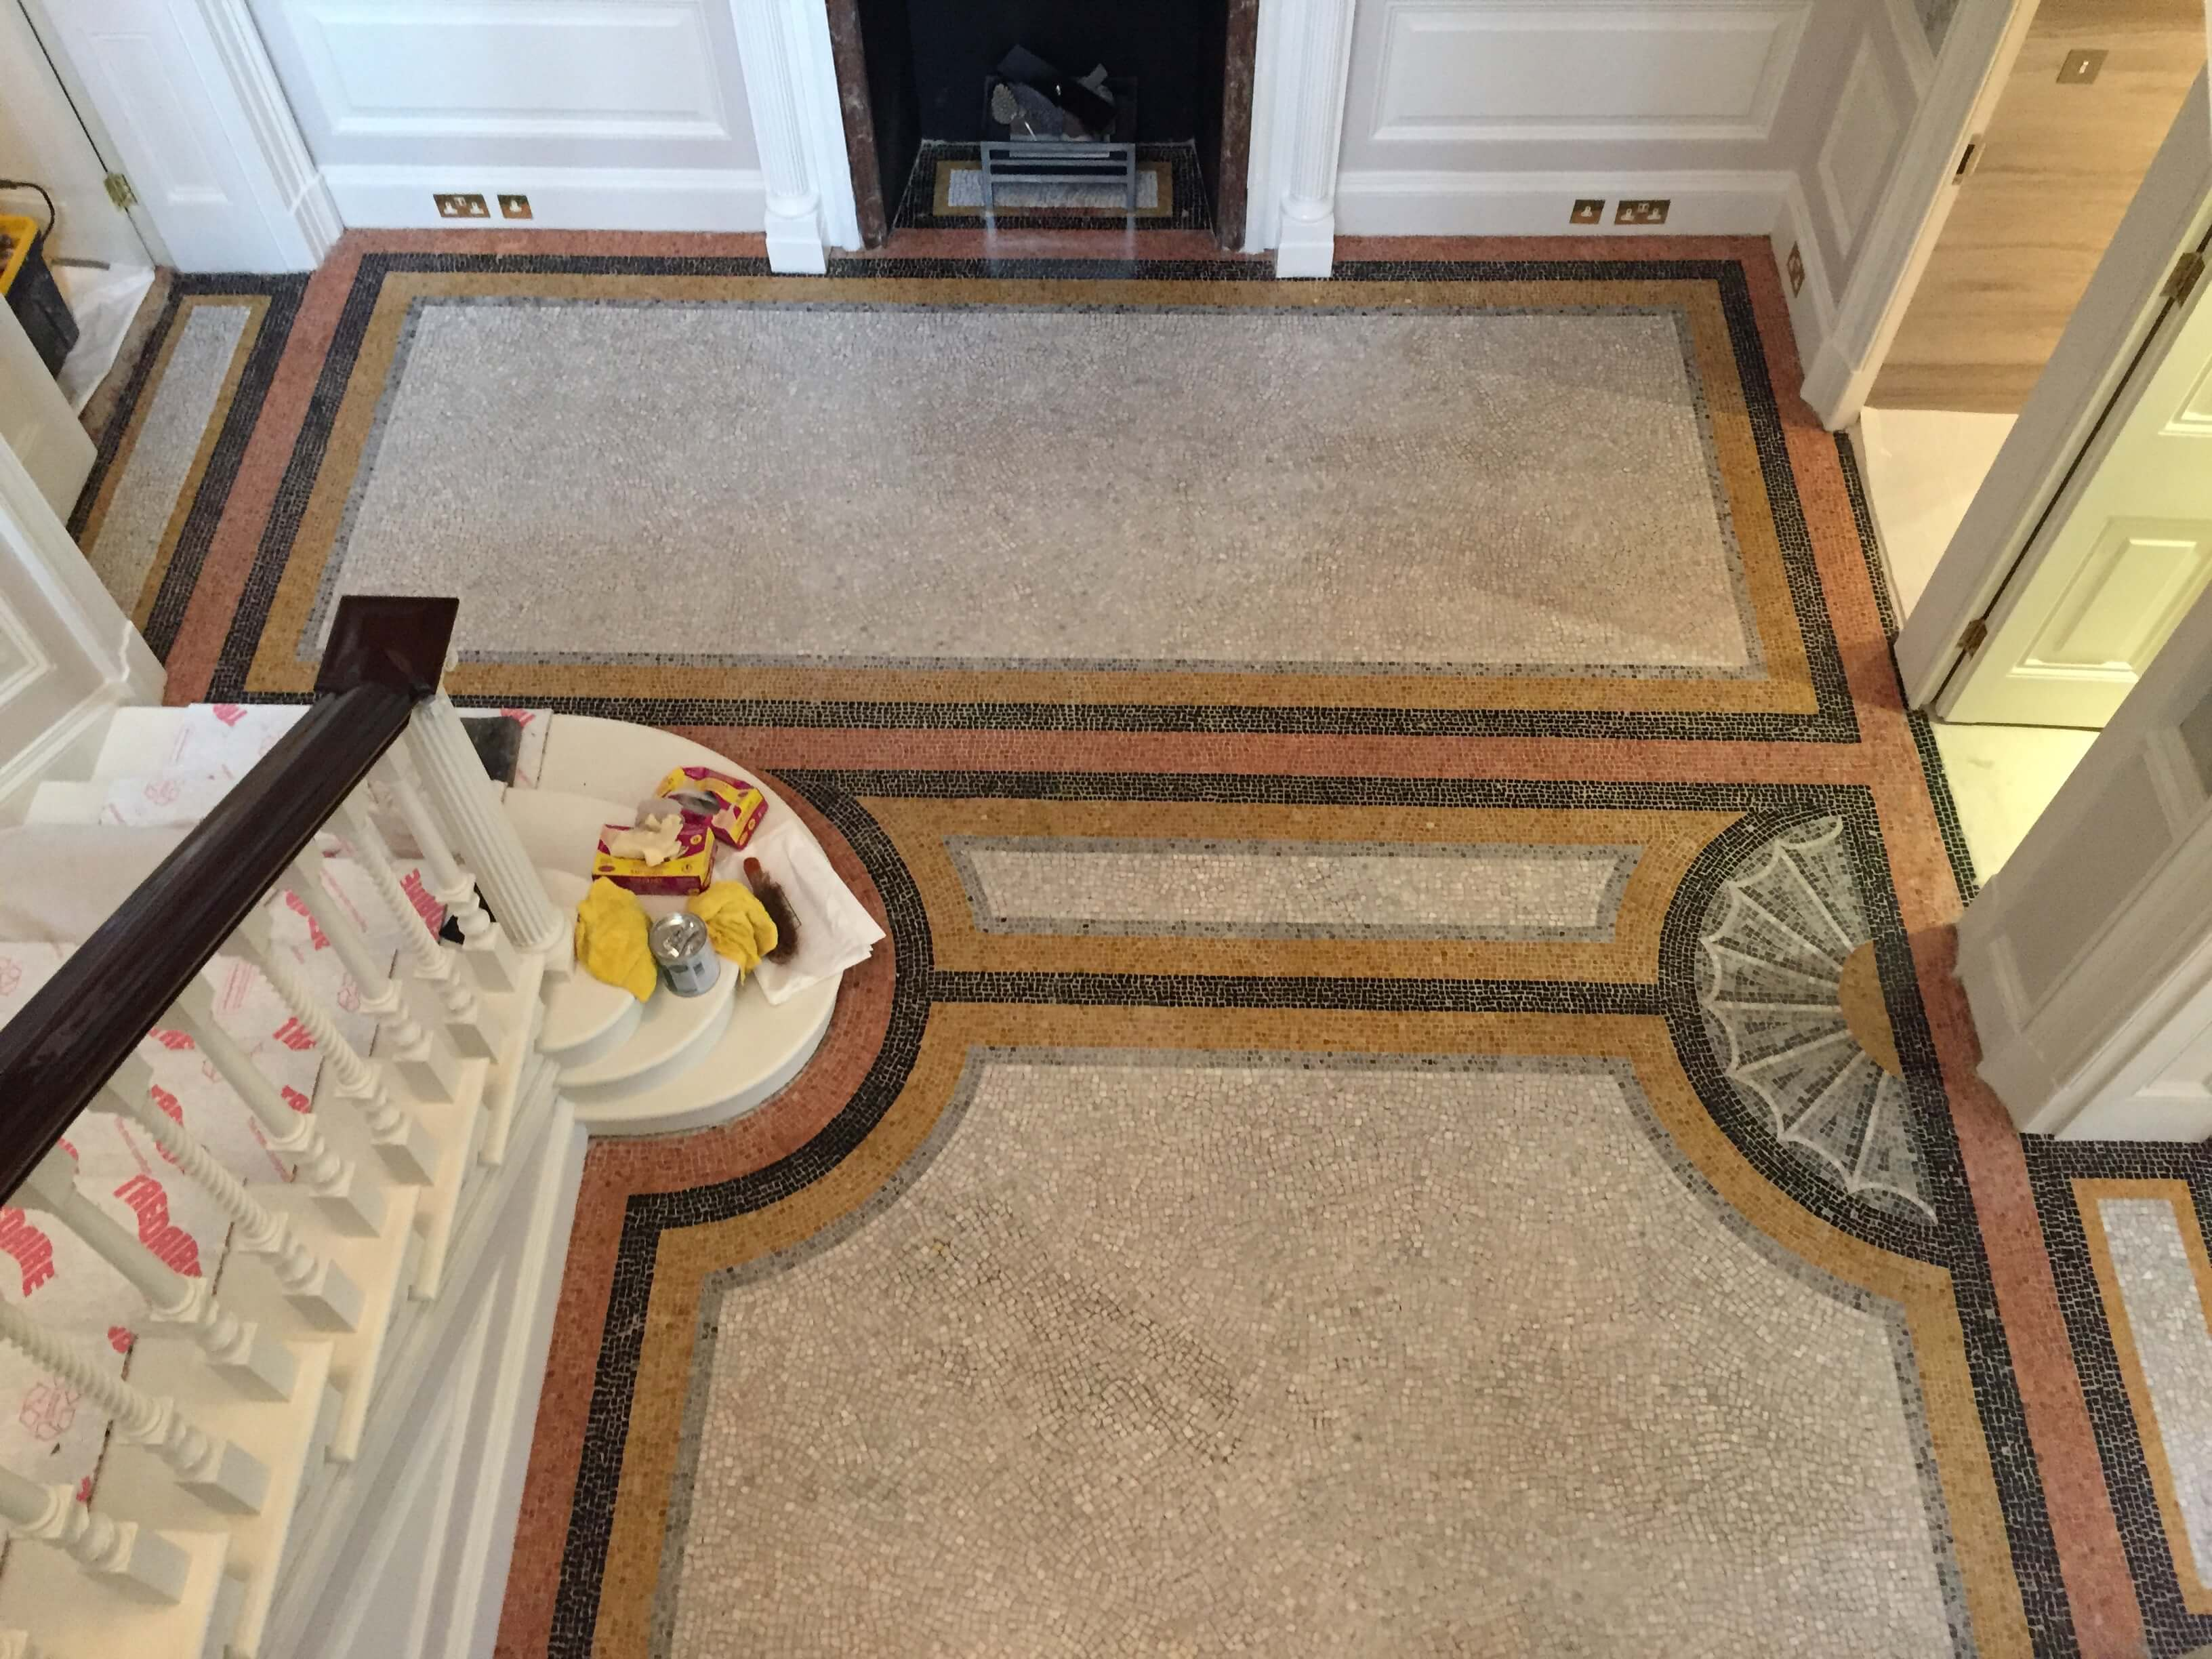 Large private residence, a presumed written off original marble mosaic floor - Mosaic Restoration